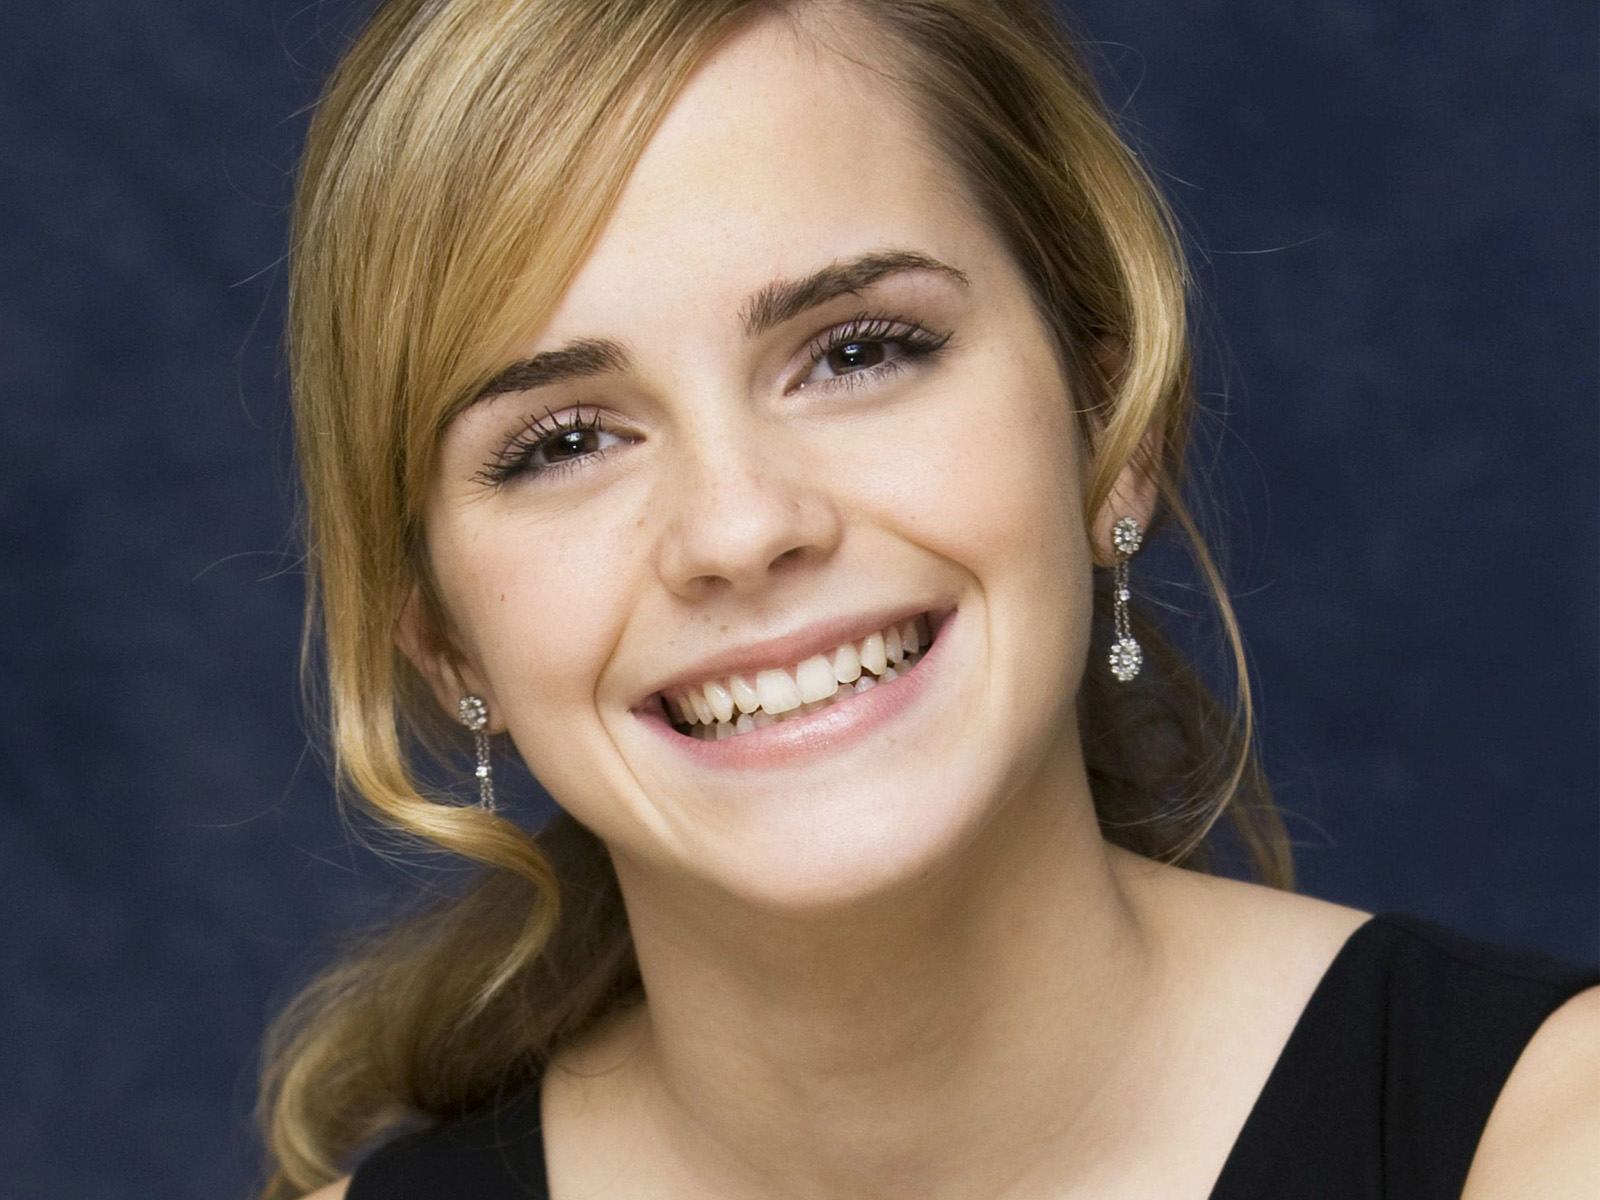 Emma Watson Beautiful Smile High Quality 653.68 Kb